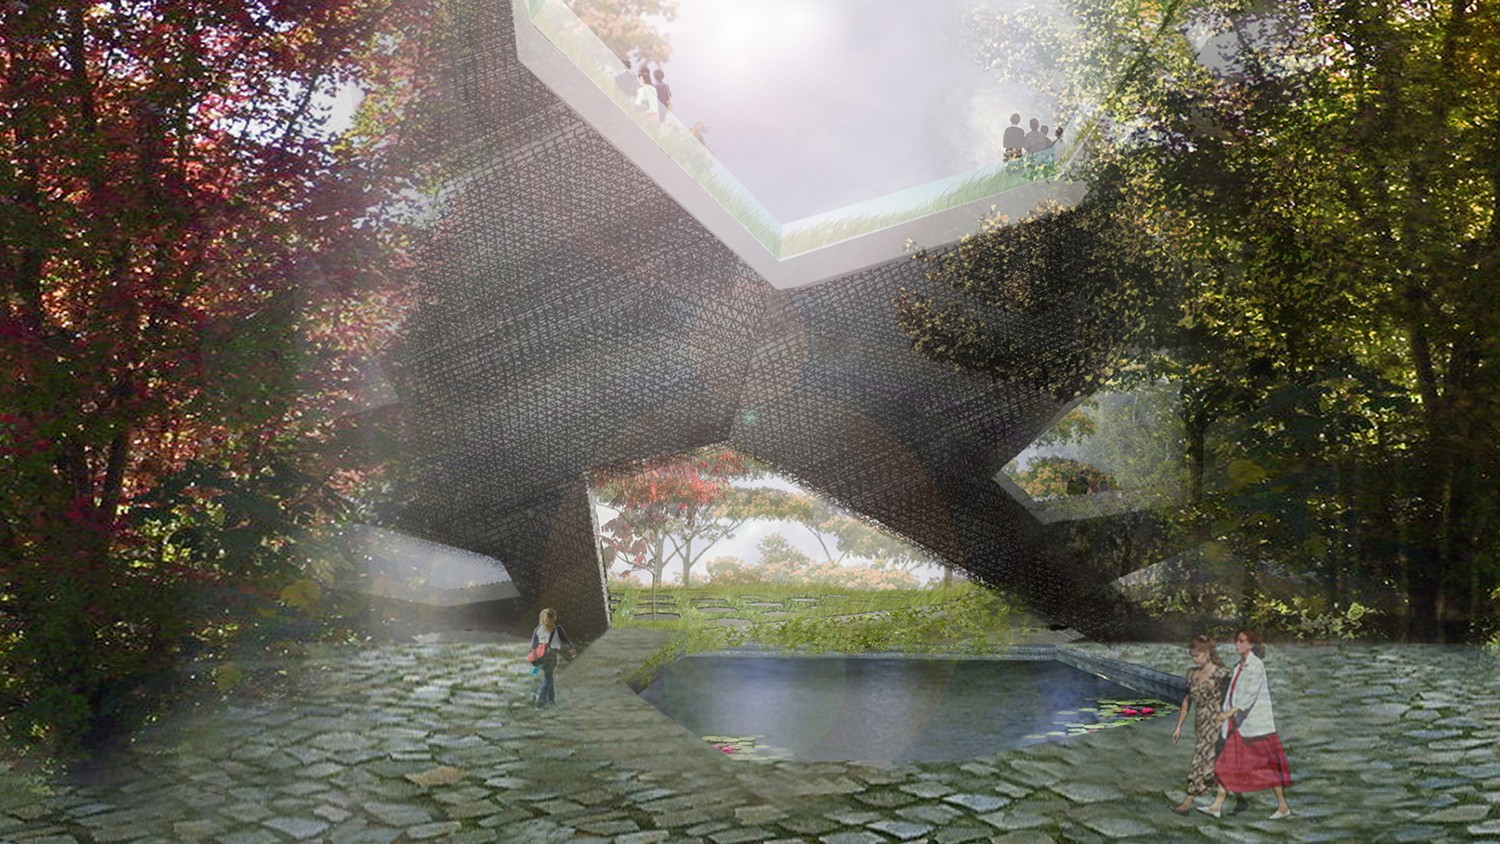 https://s3.us-east-2.amazonaws.com/steven-holl/uploads/projects/project-images/StevenHollArchitects_WorldDesignPark_view1_WH.jpg